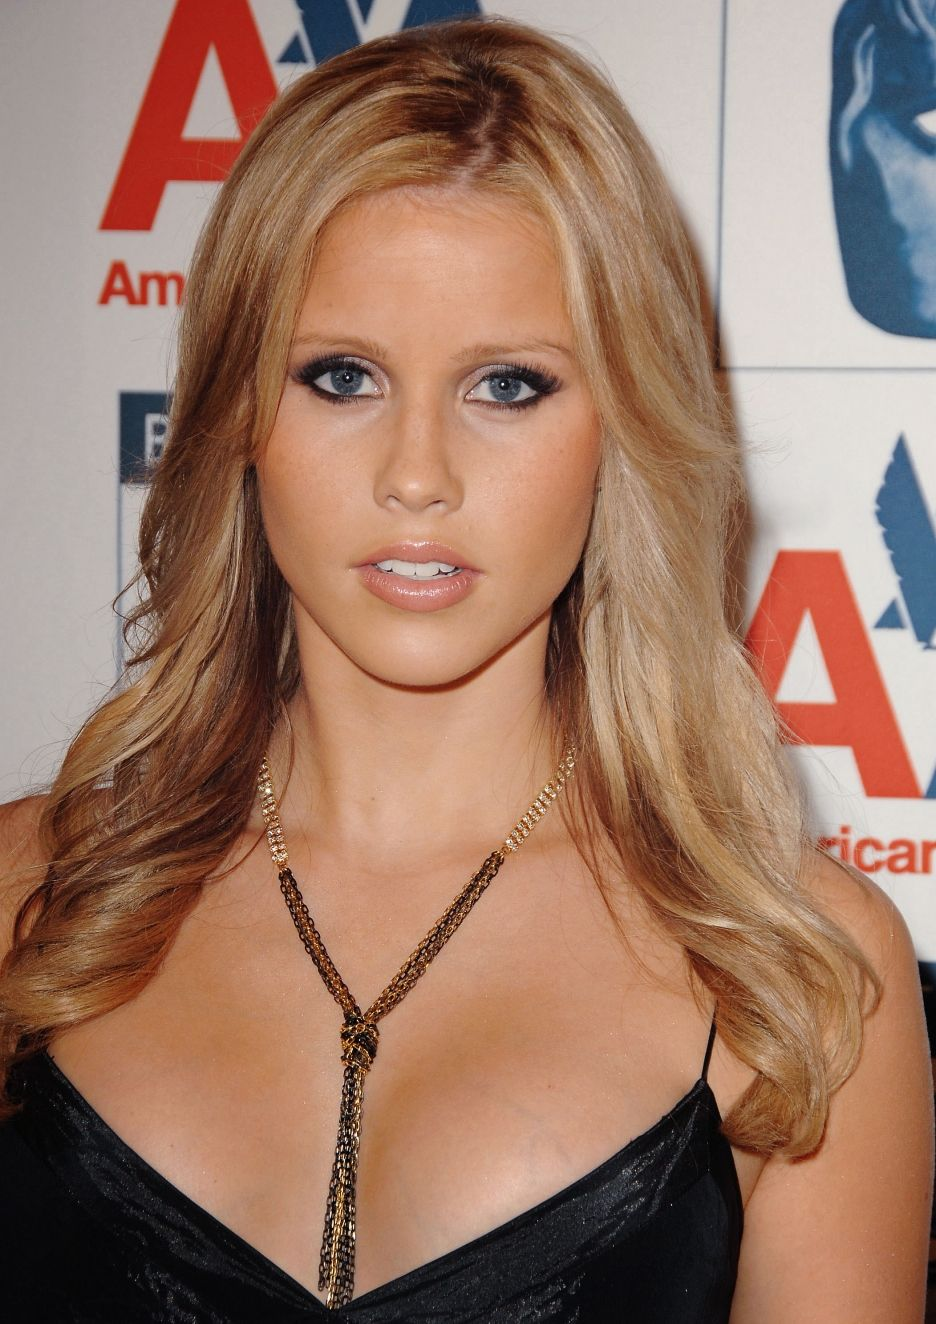 Fappening Hot Claire Holt naked photo 2017